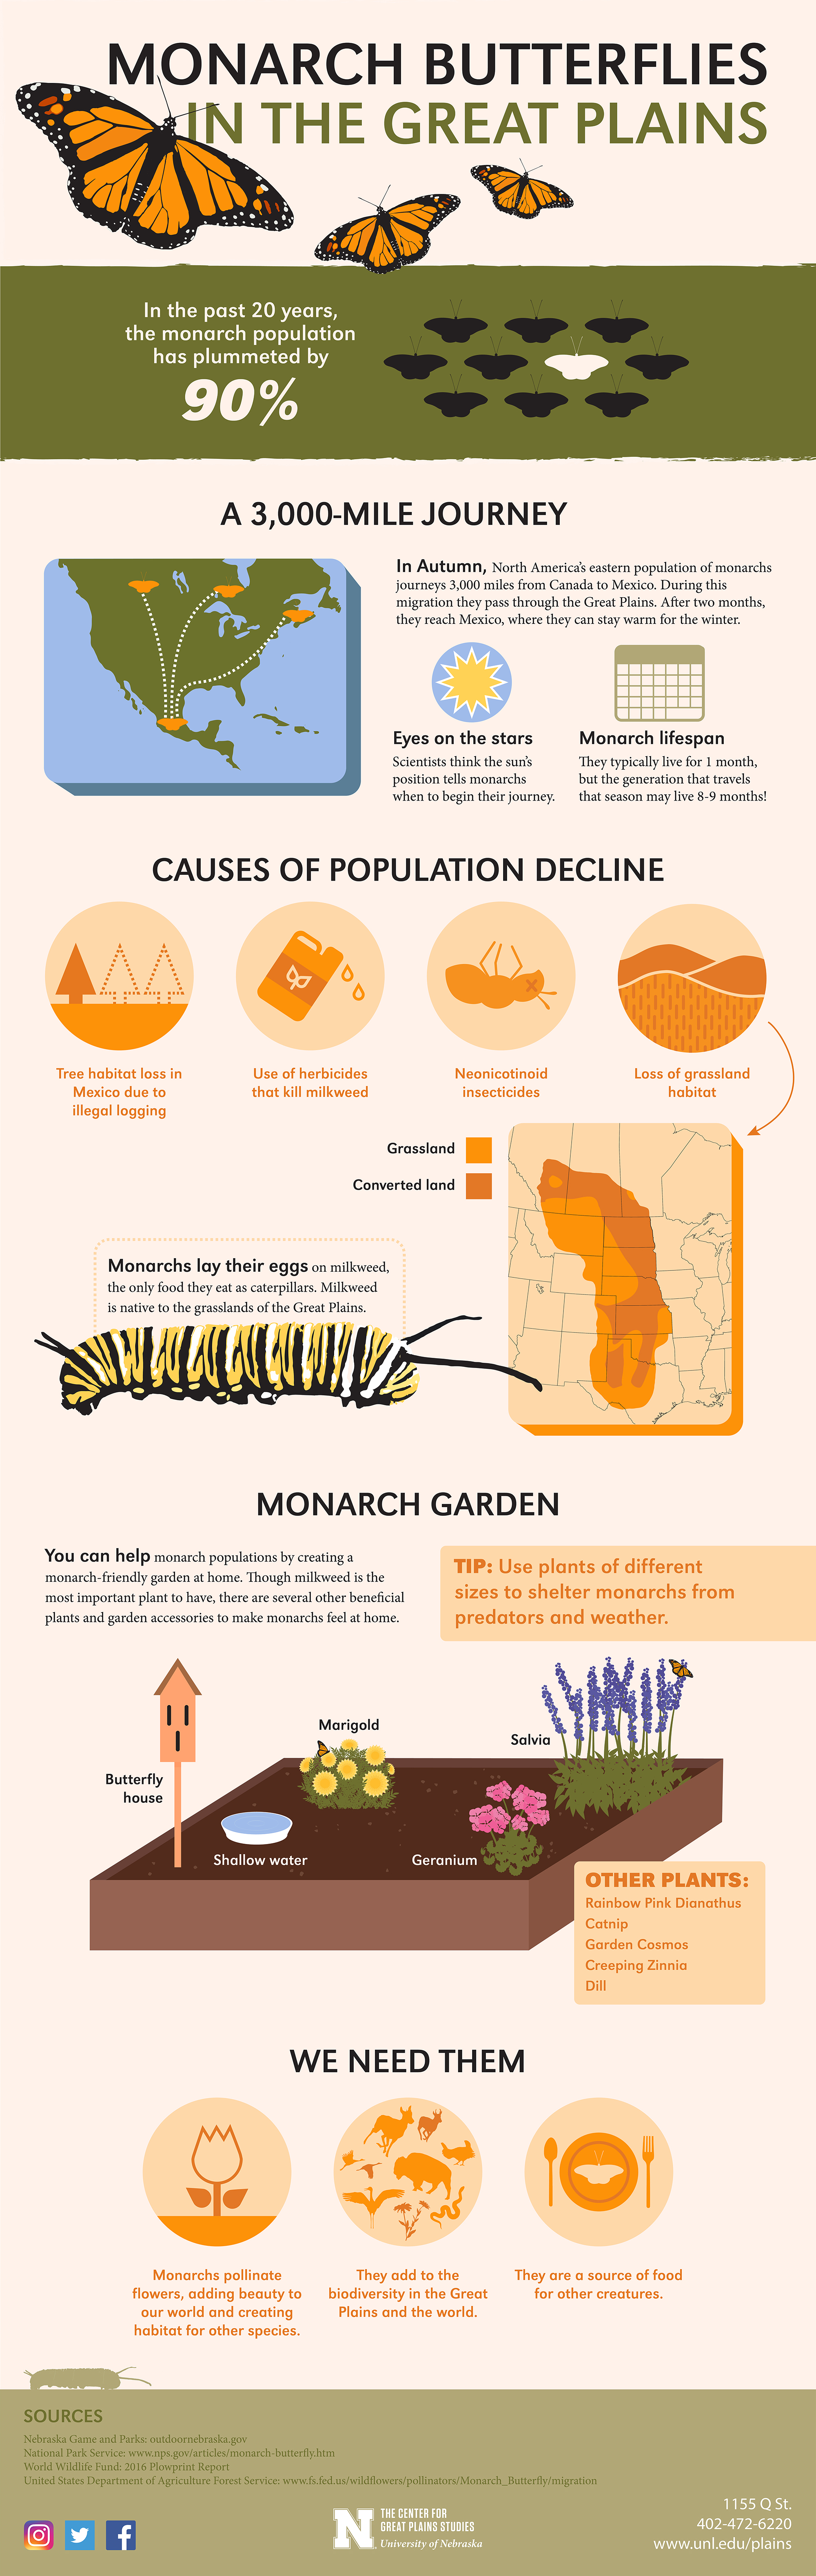 Monarchs in the Great Plains